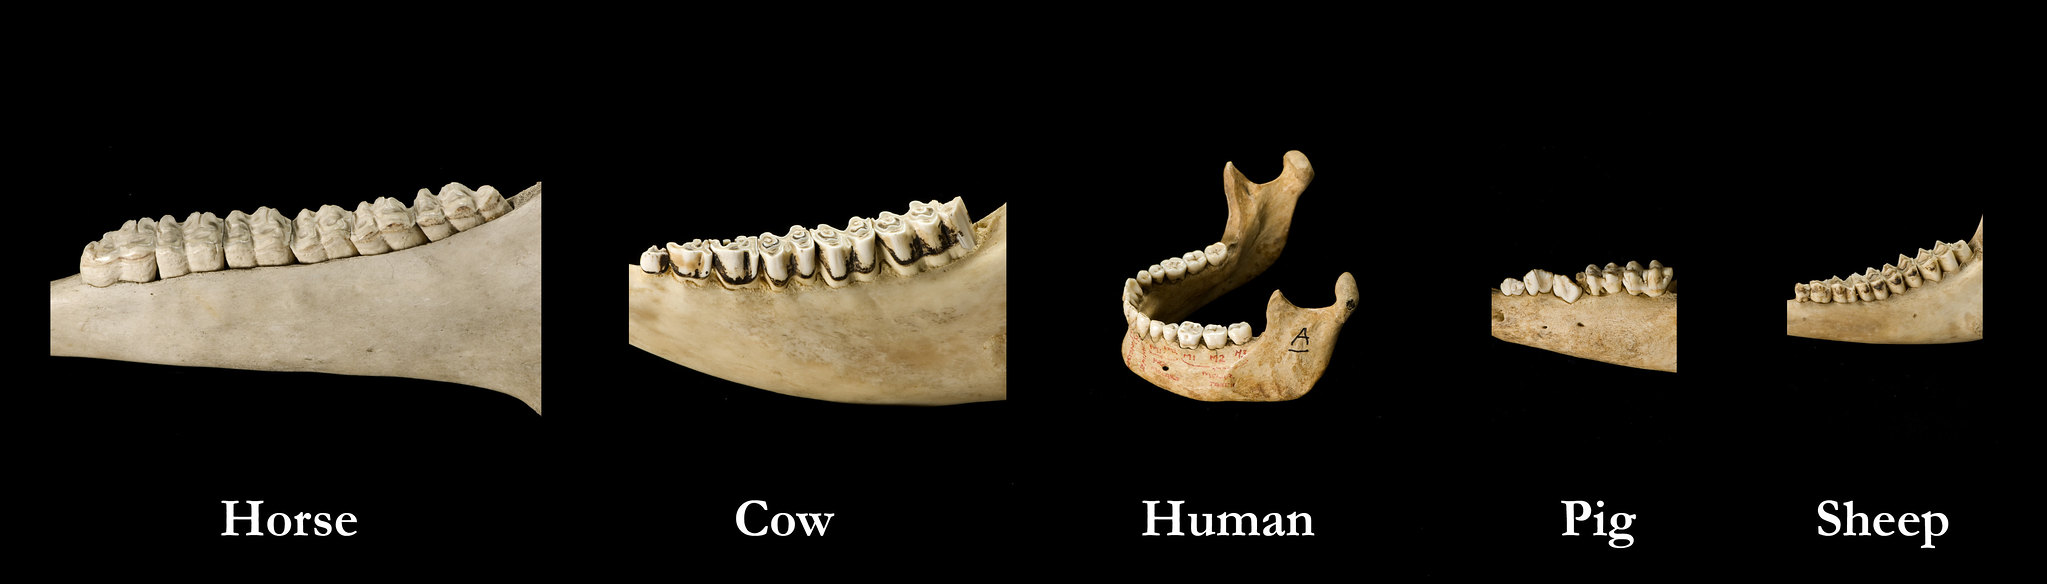 Jaws from five different species horse, cow, human, pig, sheep, to show the differences between them